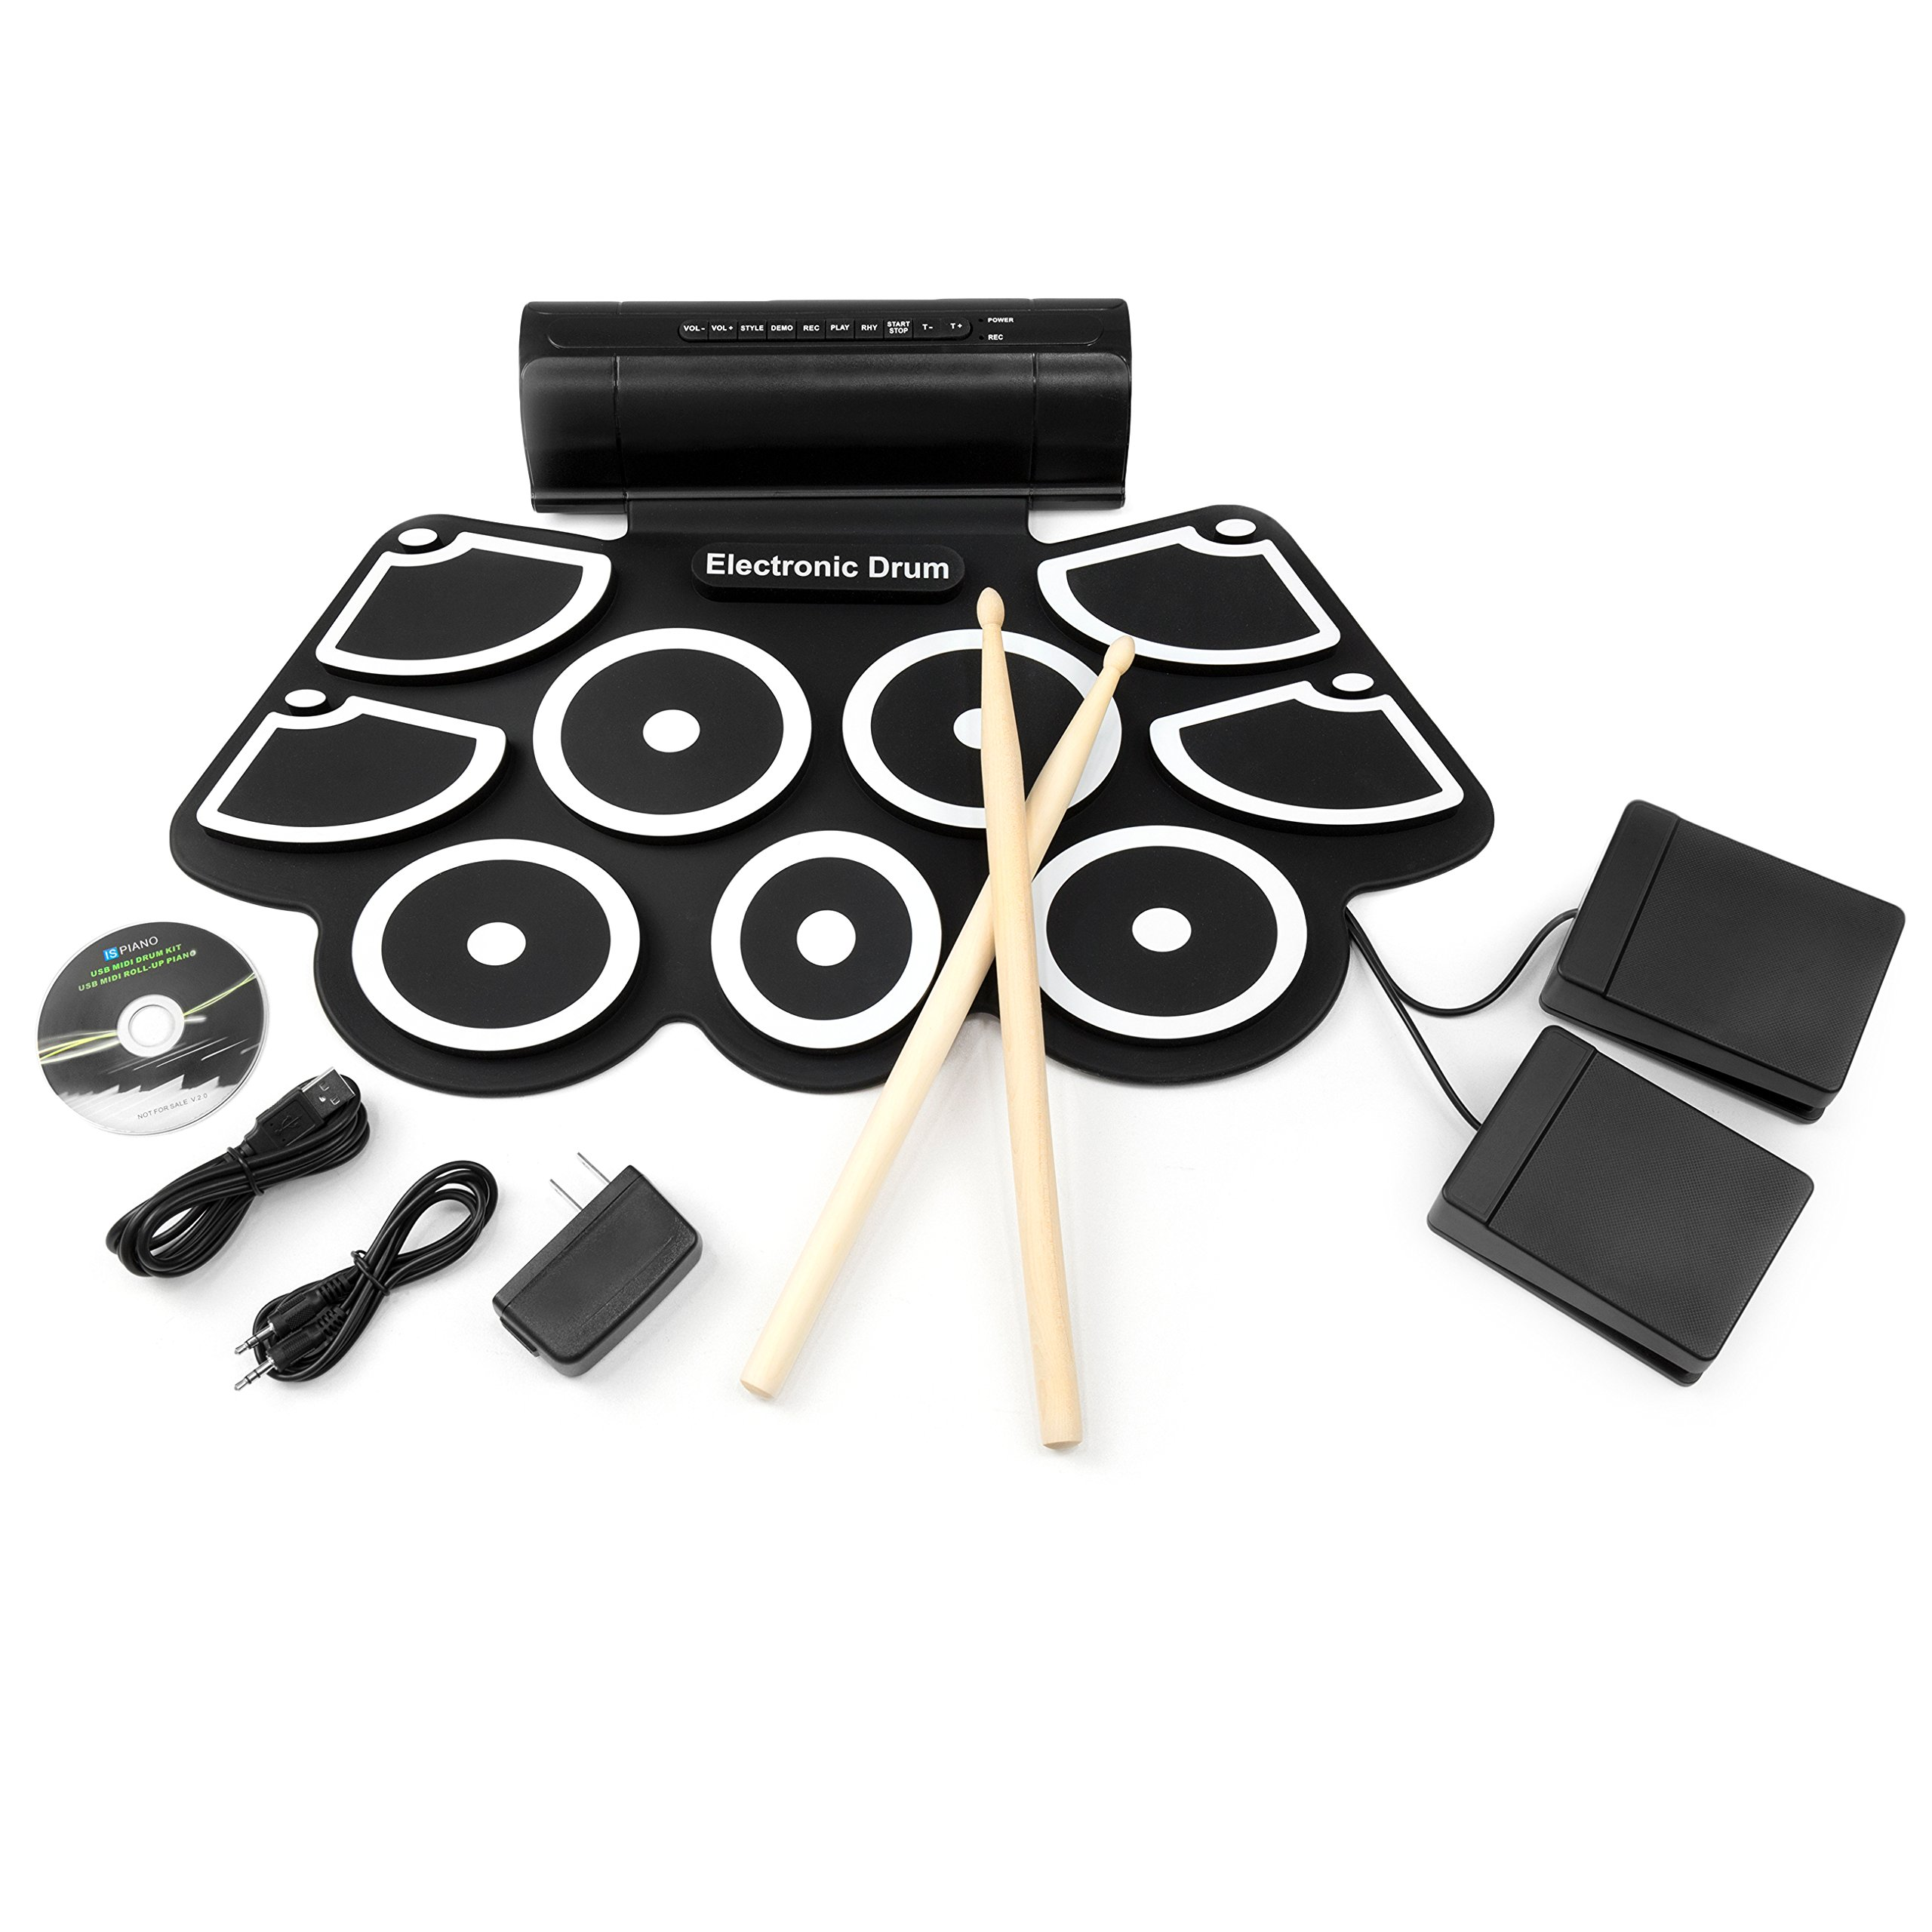 Best Choice Products Roll-Up Foldable Electronic Full Drum Kit Set w/USB MIDI, Built-In Speakers, Foot Pedals, Drumsticks - Black